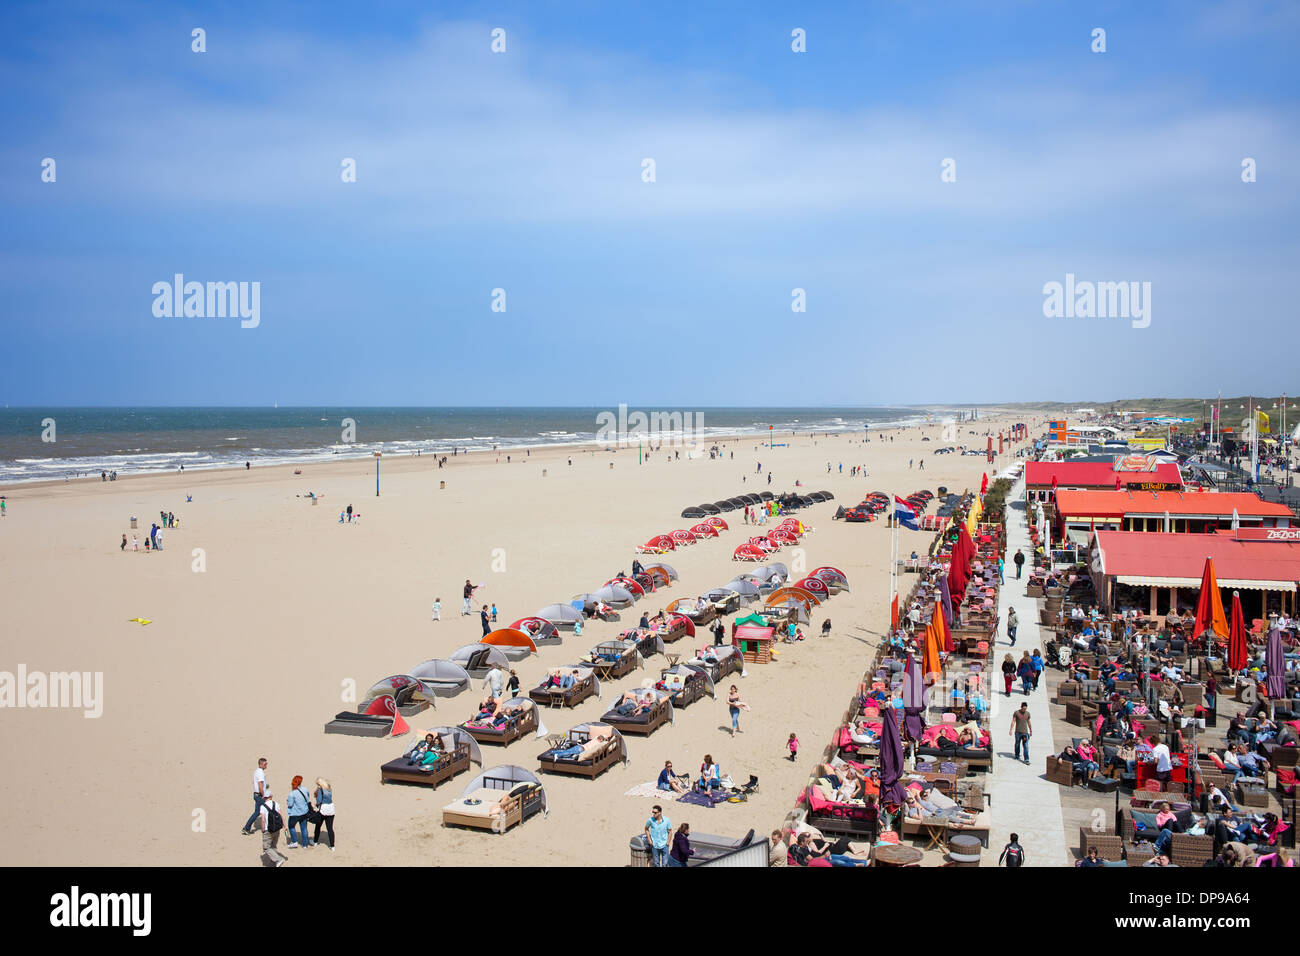 Scheveningen Beach Restaurants Cafes Restaurants Clubs Along The Scheveningen Beach By The